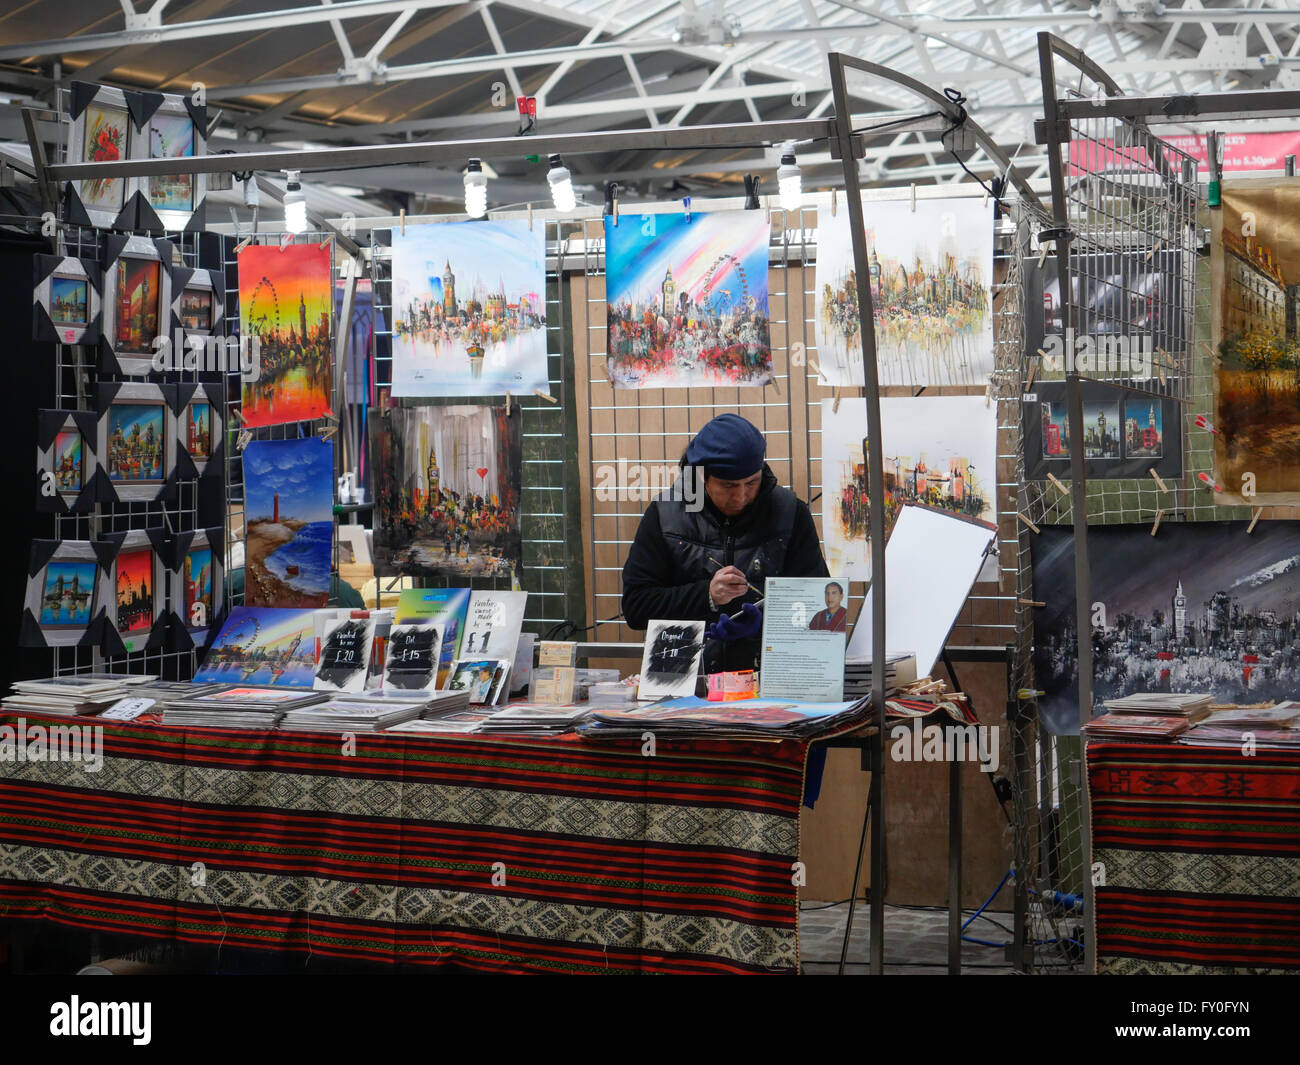 An artists stall in Greenwich Market London UK - Stock Image